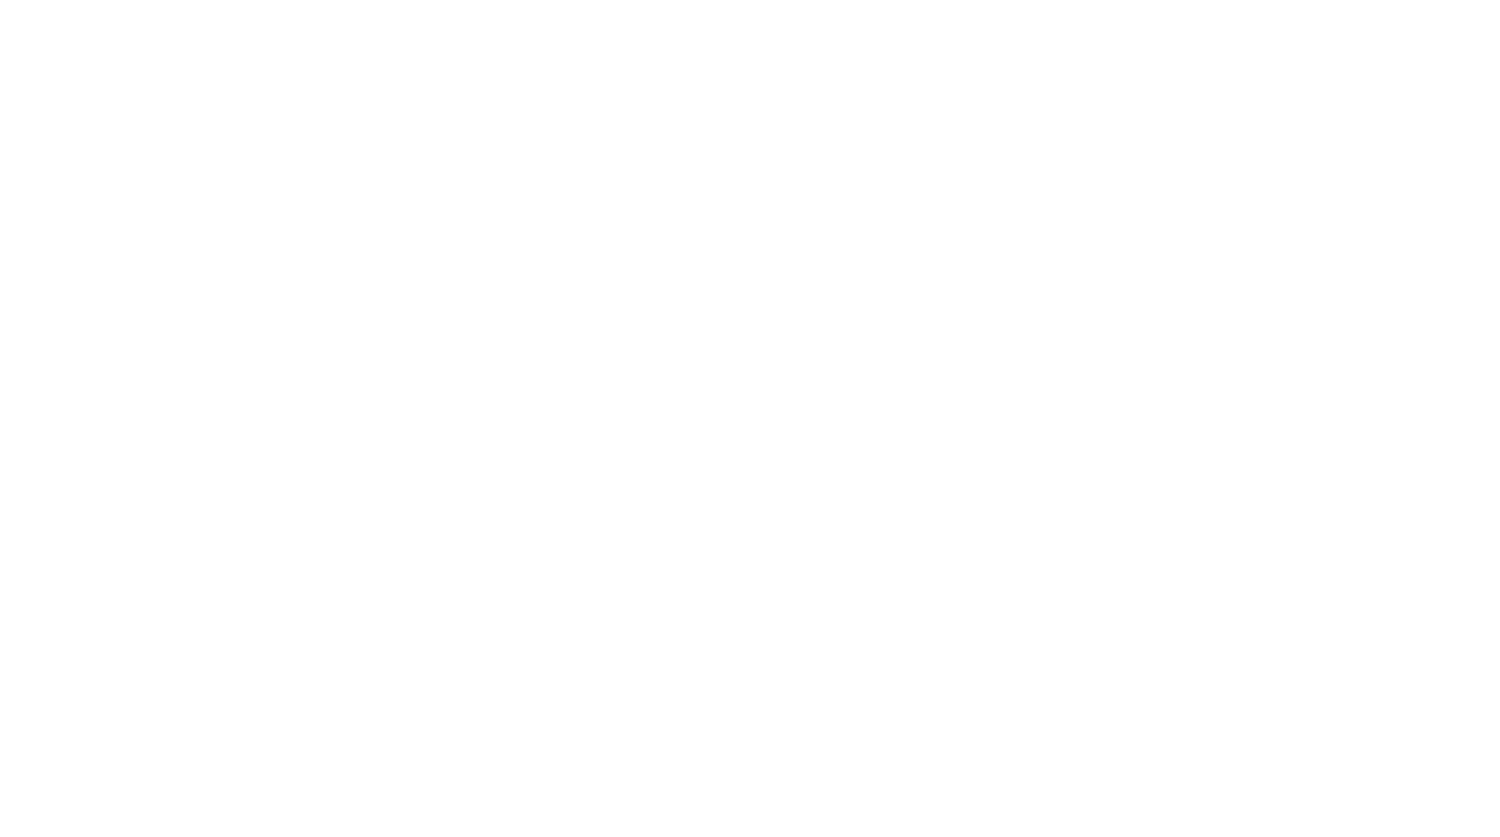 Michael's Beef House